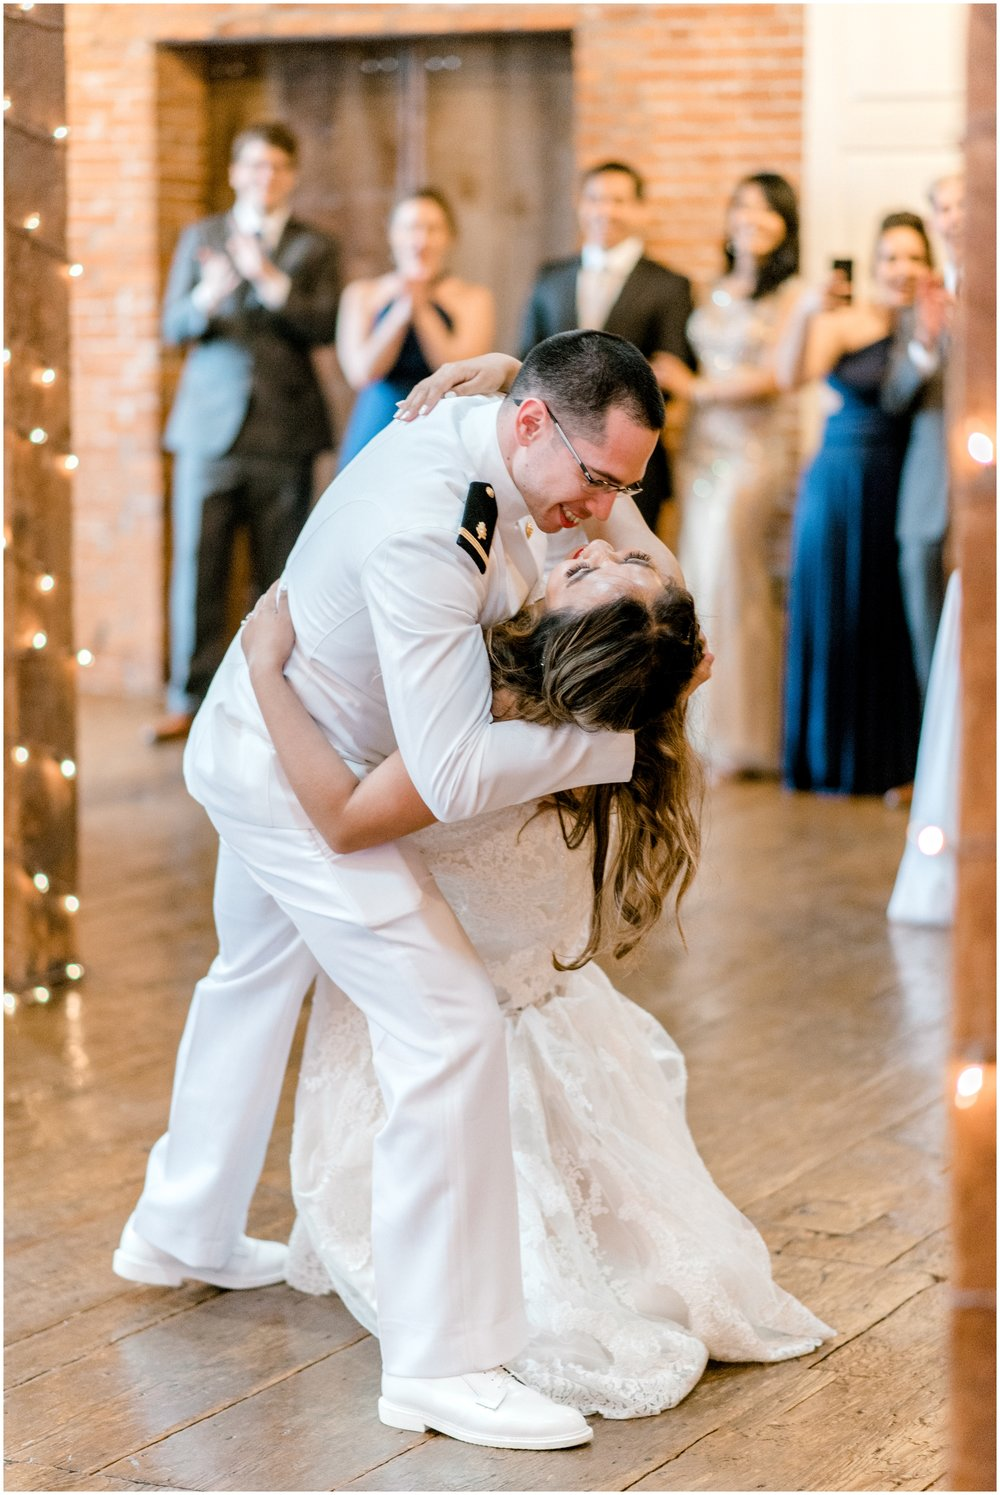 Spring Wedding at The Booking House in Manheim, PA - Krista Brackin Photography_0023.jpg